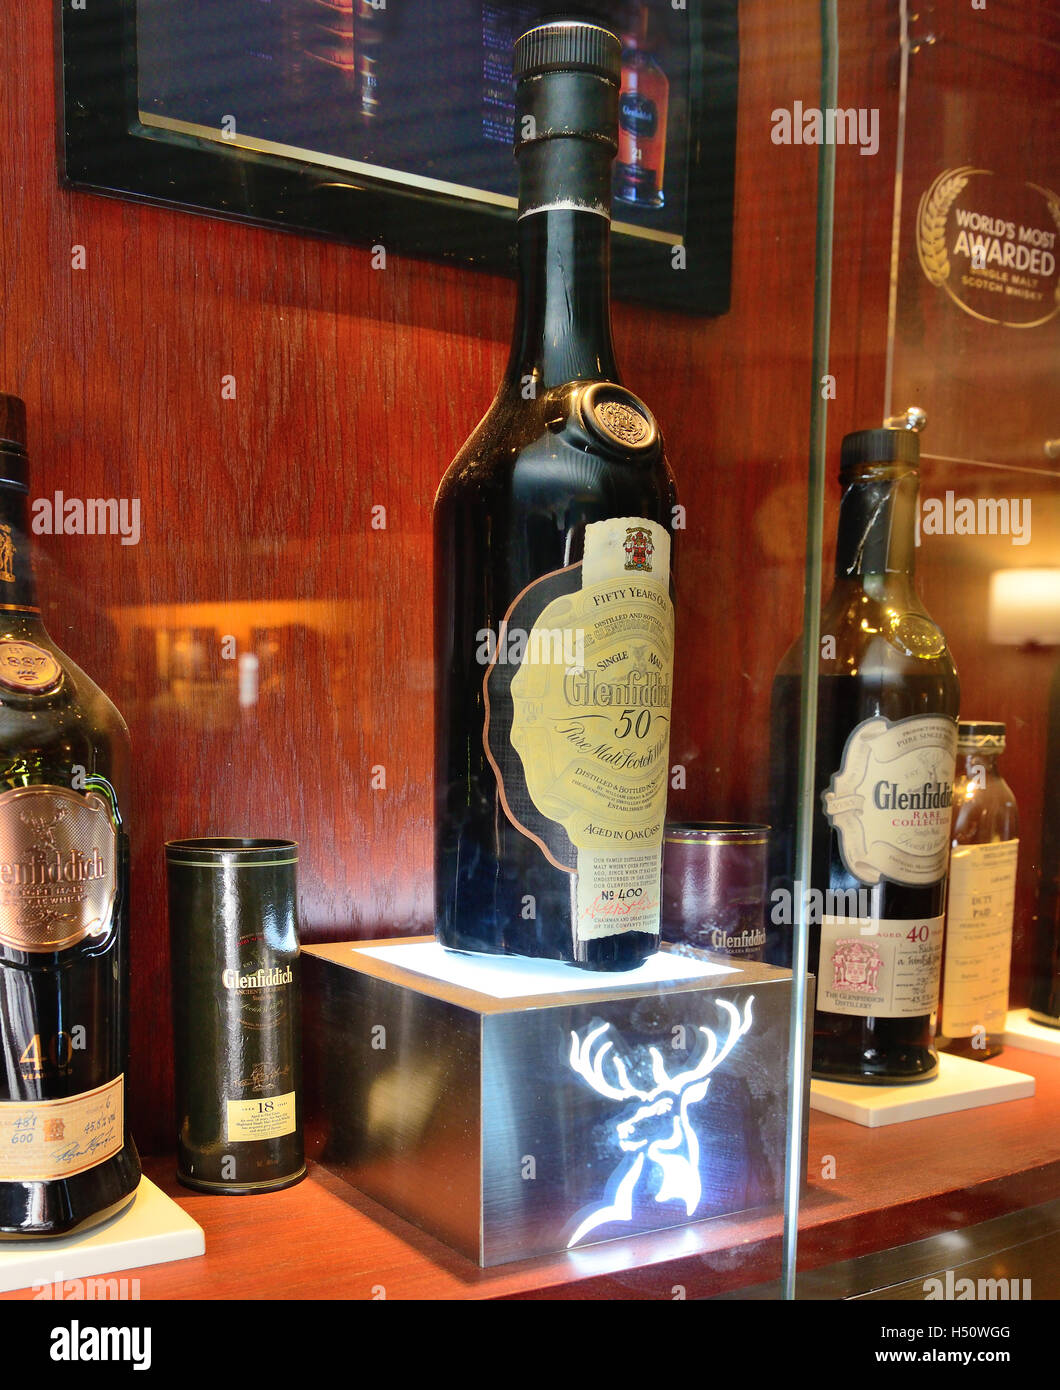 Glenfiddich 50 Jahre alten Single Malt Whisky hinter verschlossenen Schrank in der Bascule Bar, Cape Grace Hotel, Stockfoto